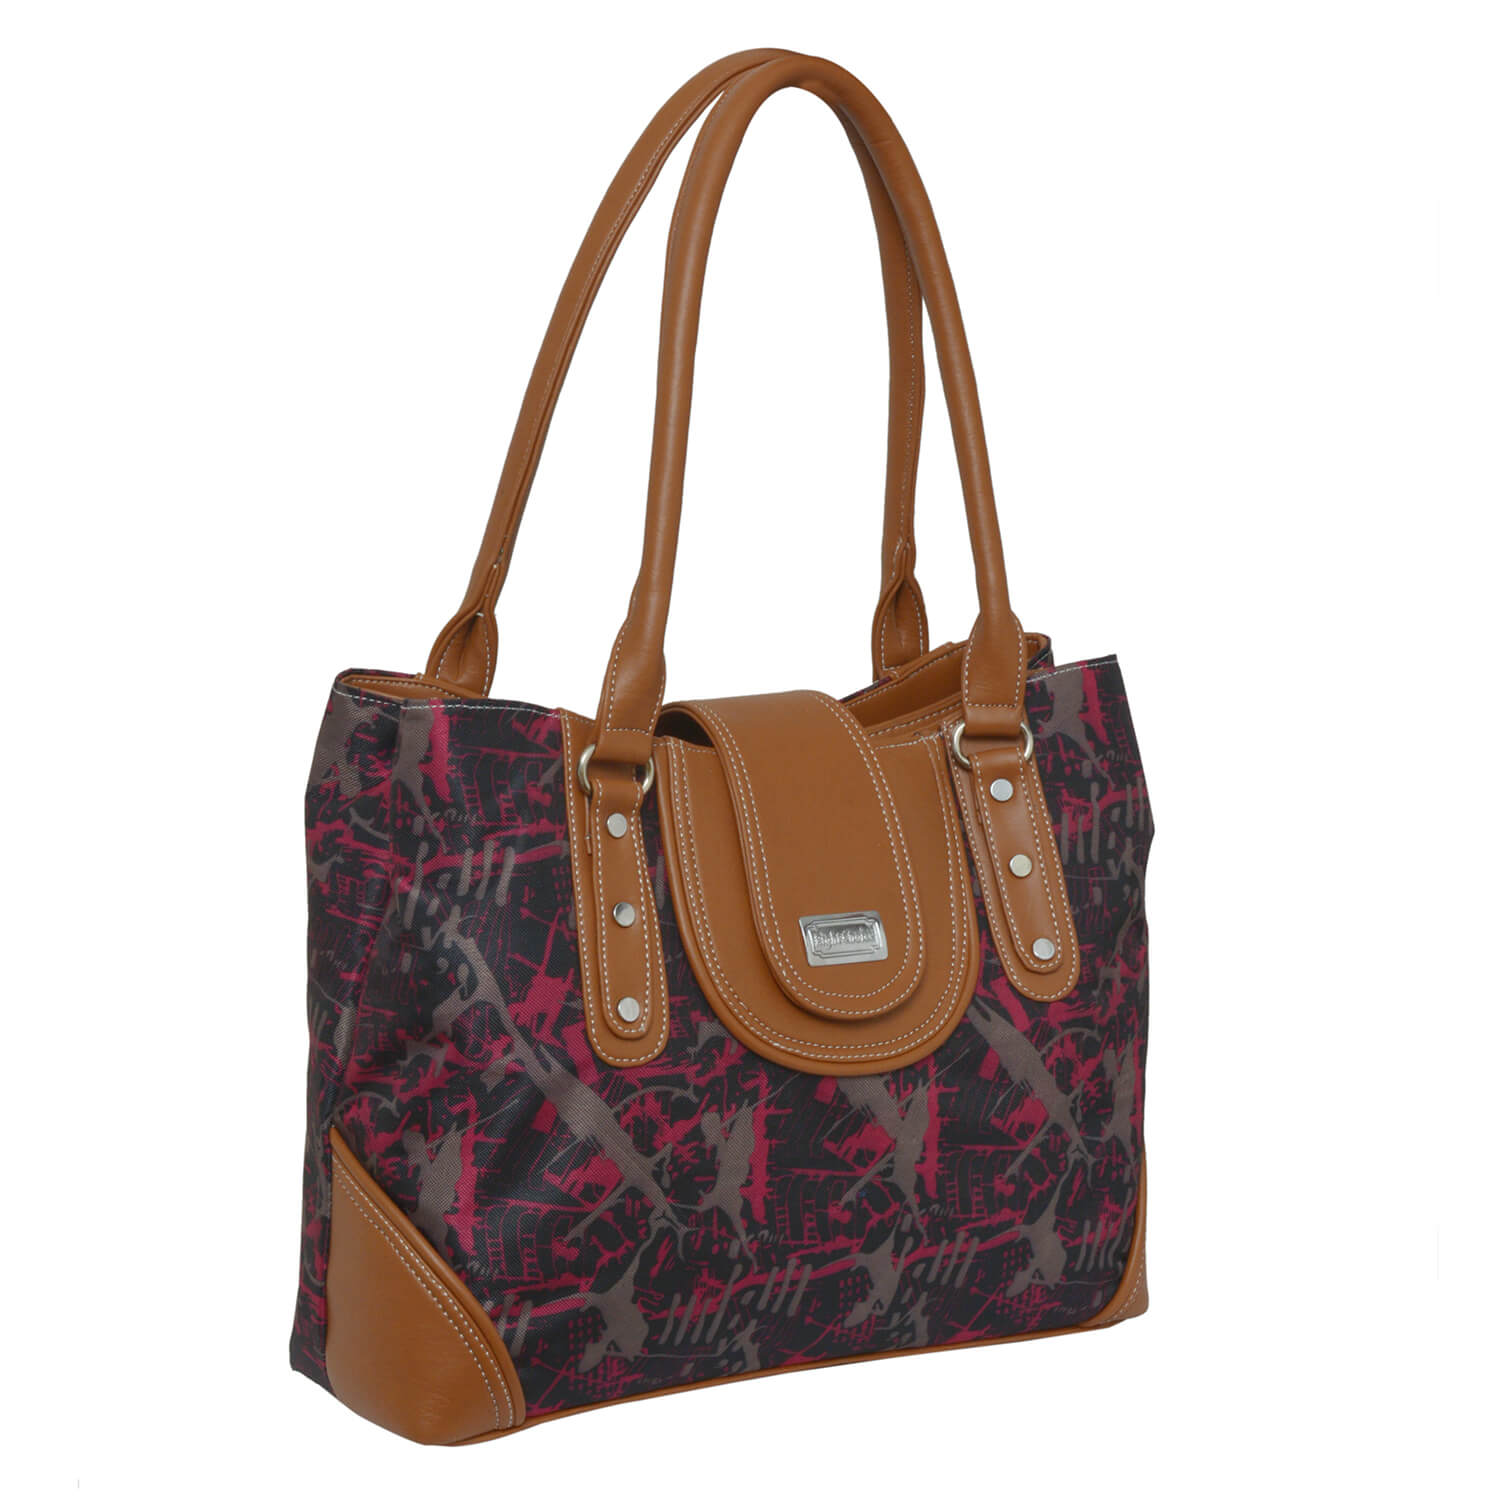 Right Choice RCH306 women's handbags in a modern type